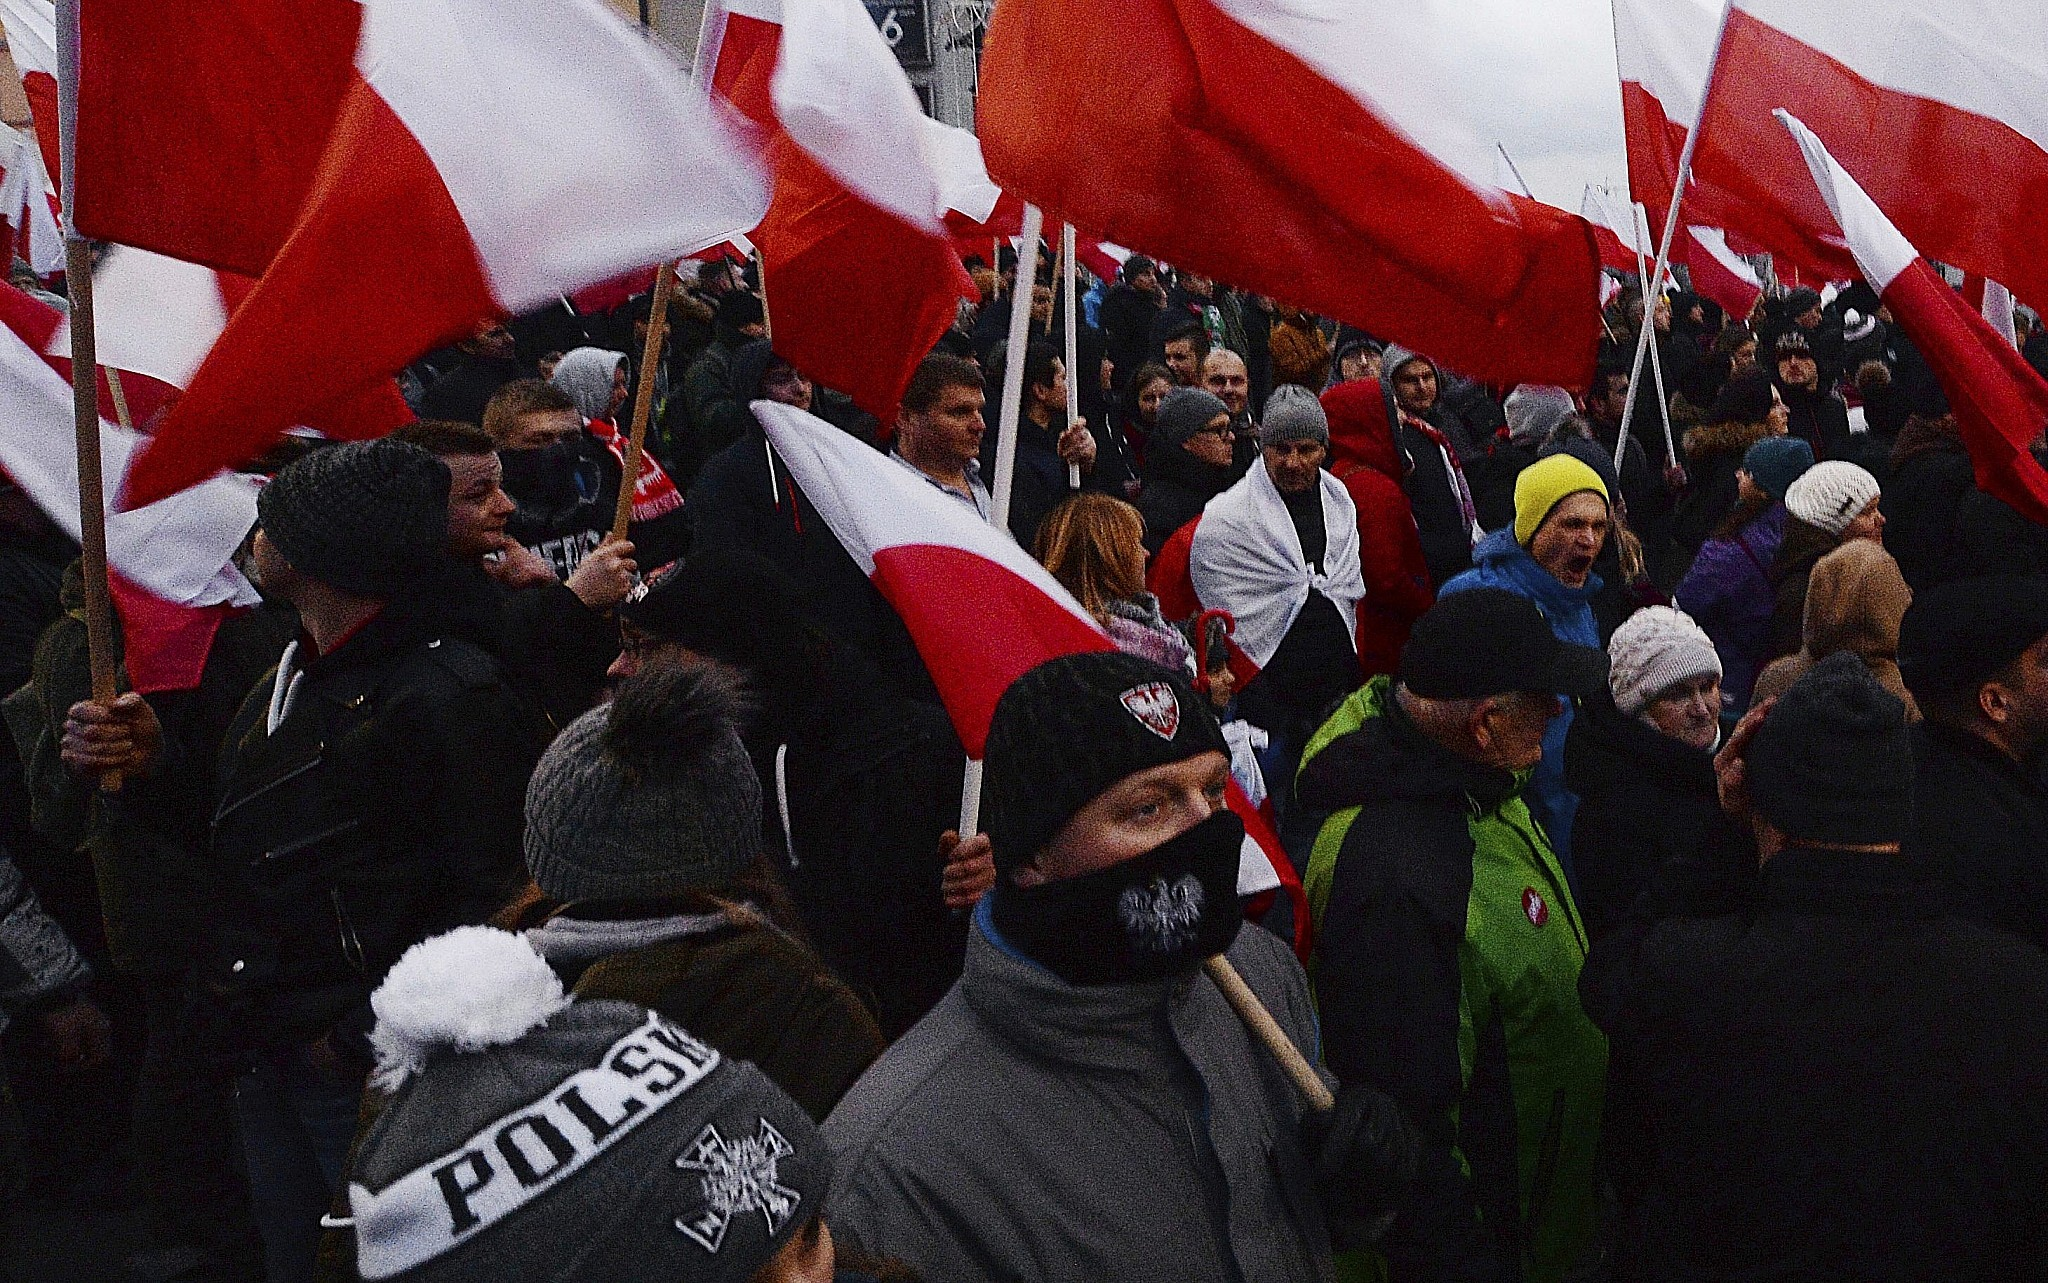 Demonstrators wave Polish flags during the annual march to commemorate Poland's National Independence Day in Warsaw Saturday Nov. 11 2017. Thousands of nationalists marched in Warsaw on Poland's Independence Day holiday taking part in an eve